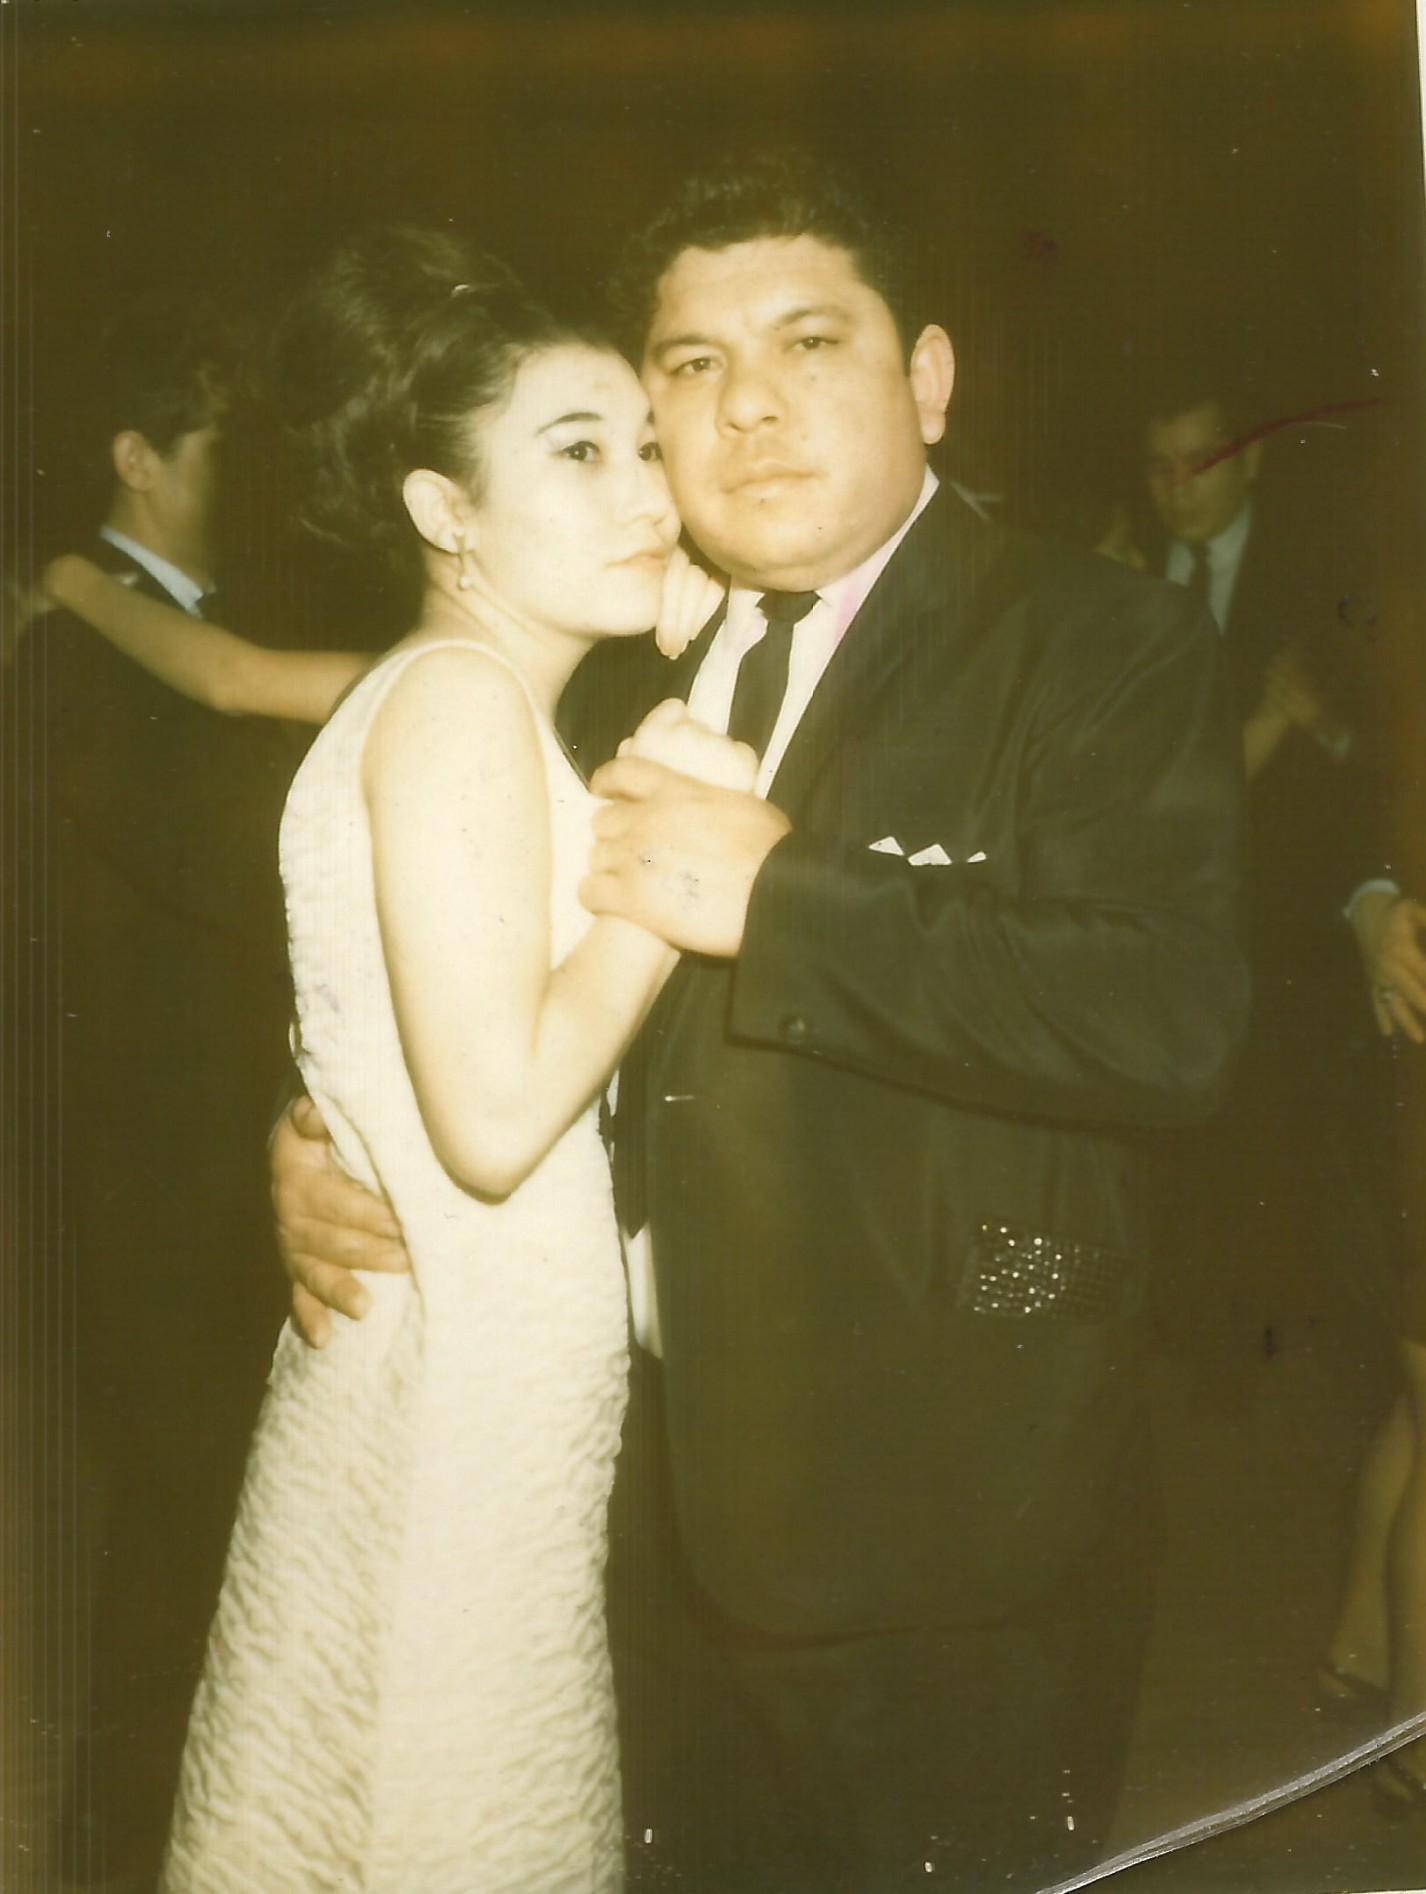 My mom and dad at the Aragon Ballroom, December 1967